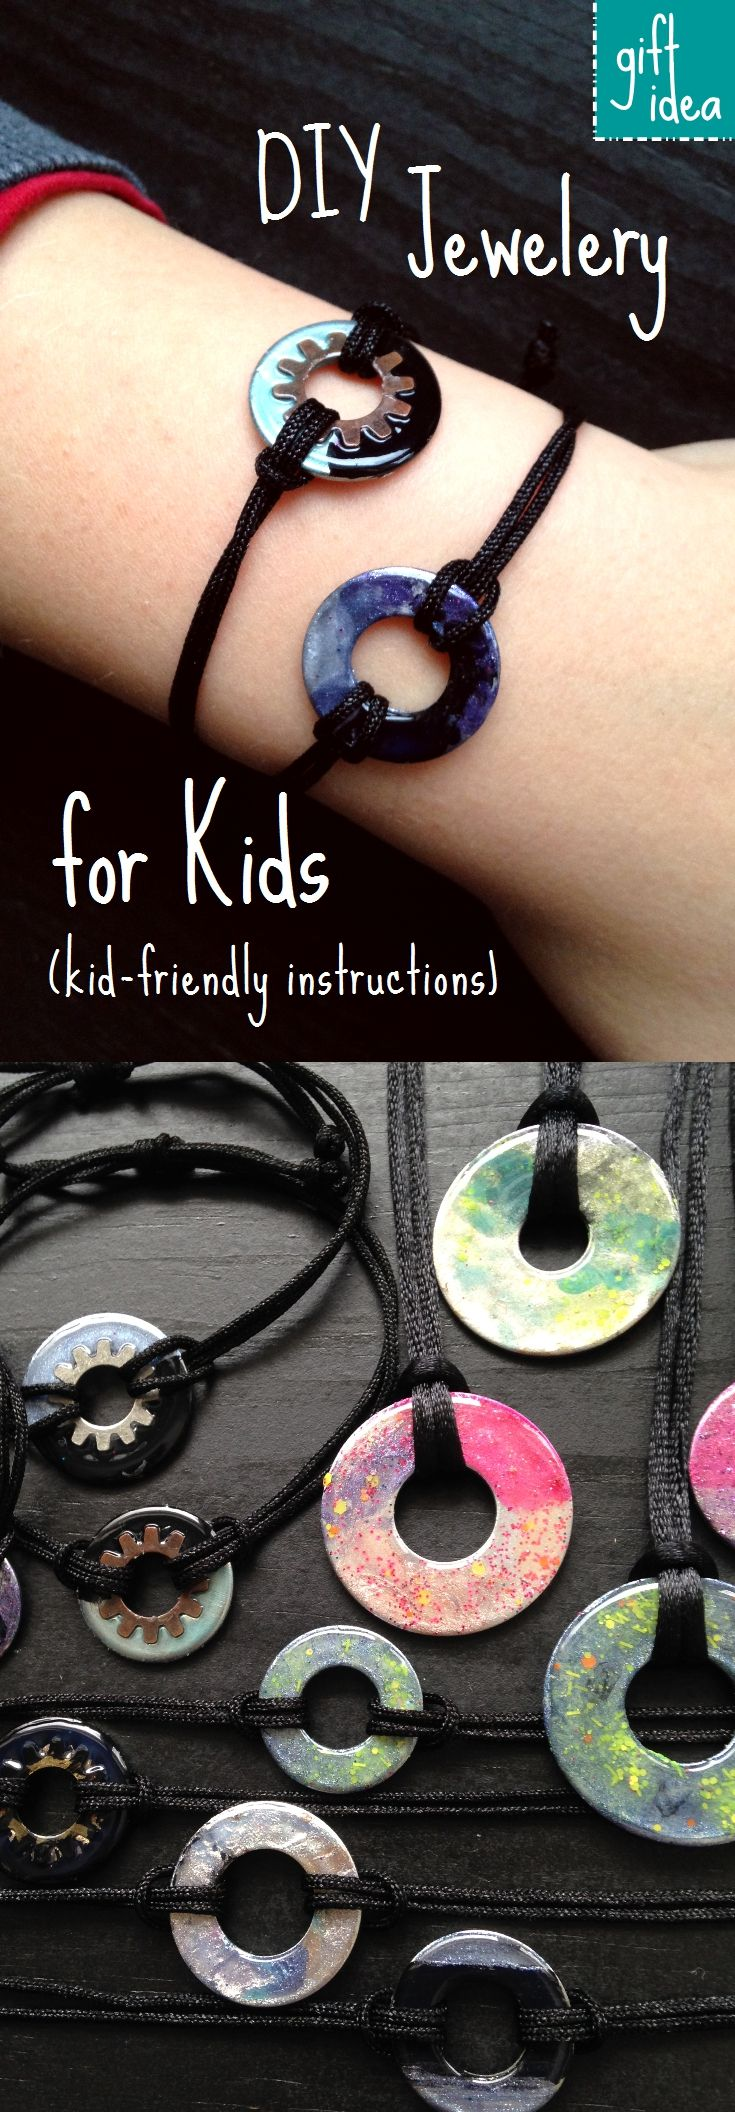 We made beautiful bracelets and necklaces for gifts so fun and